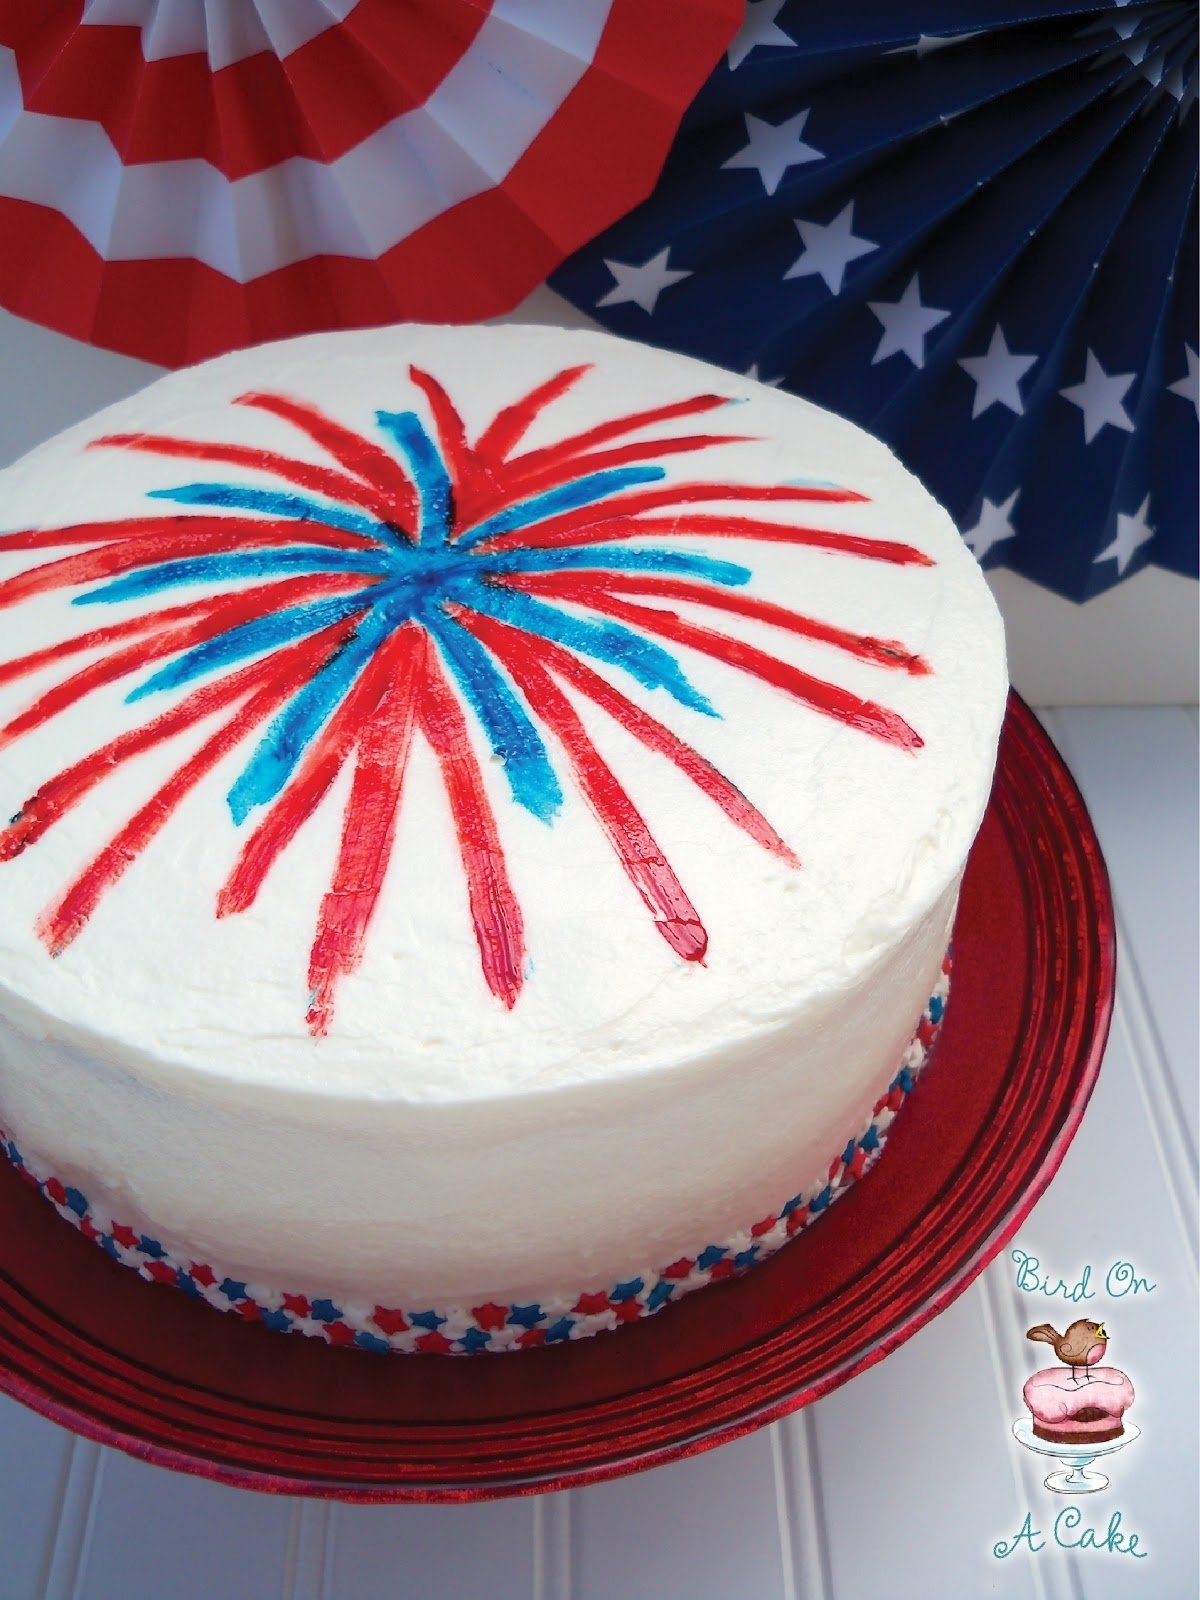 10 Stylish 4Th Of July Baking Ideas bird on a cake 4th of july fireworks cake